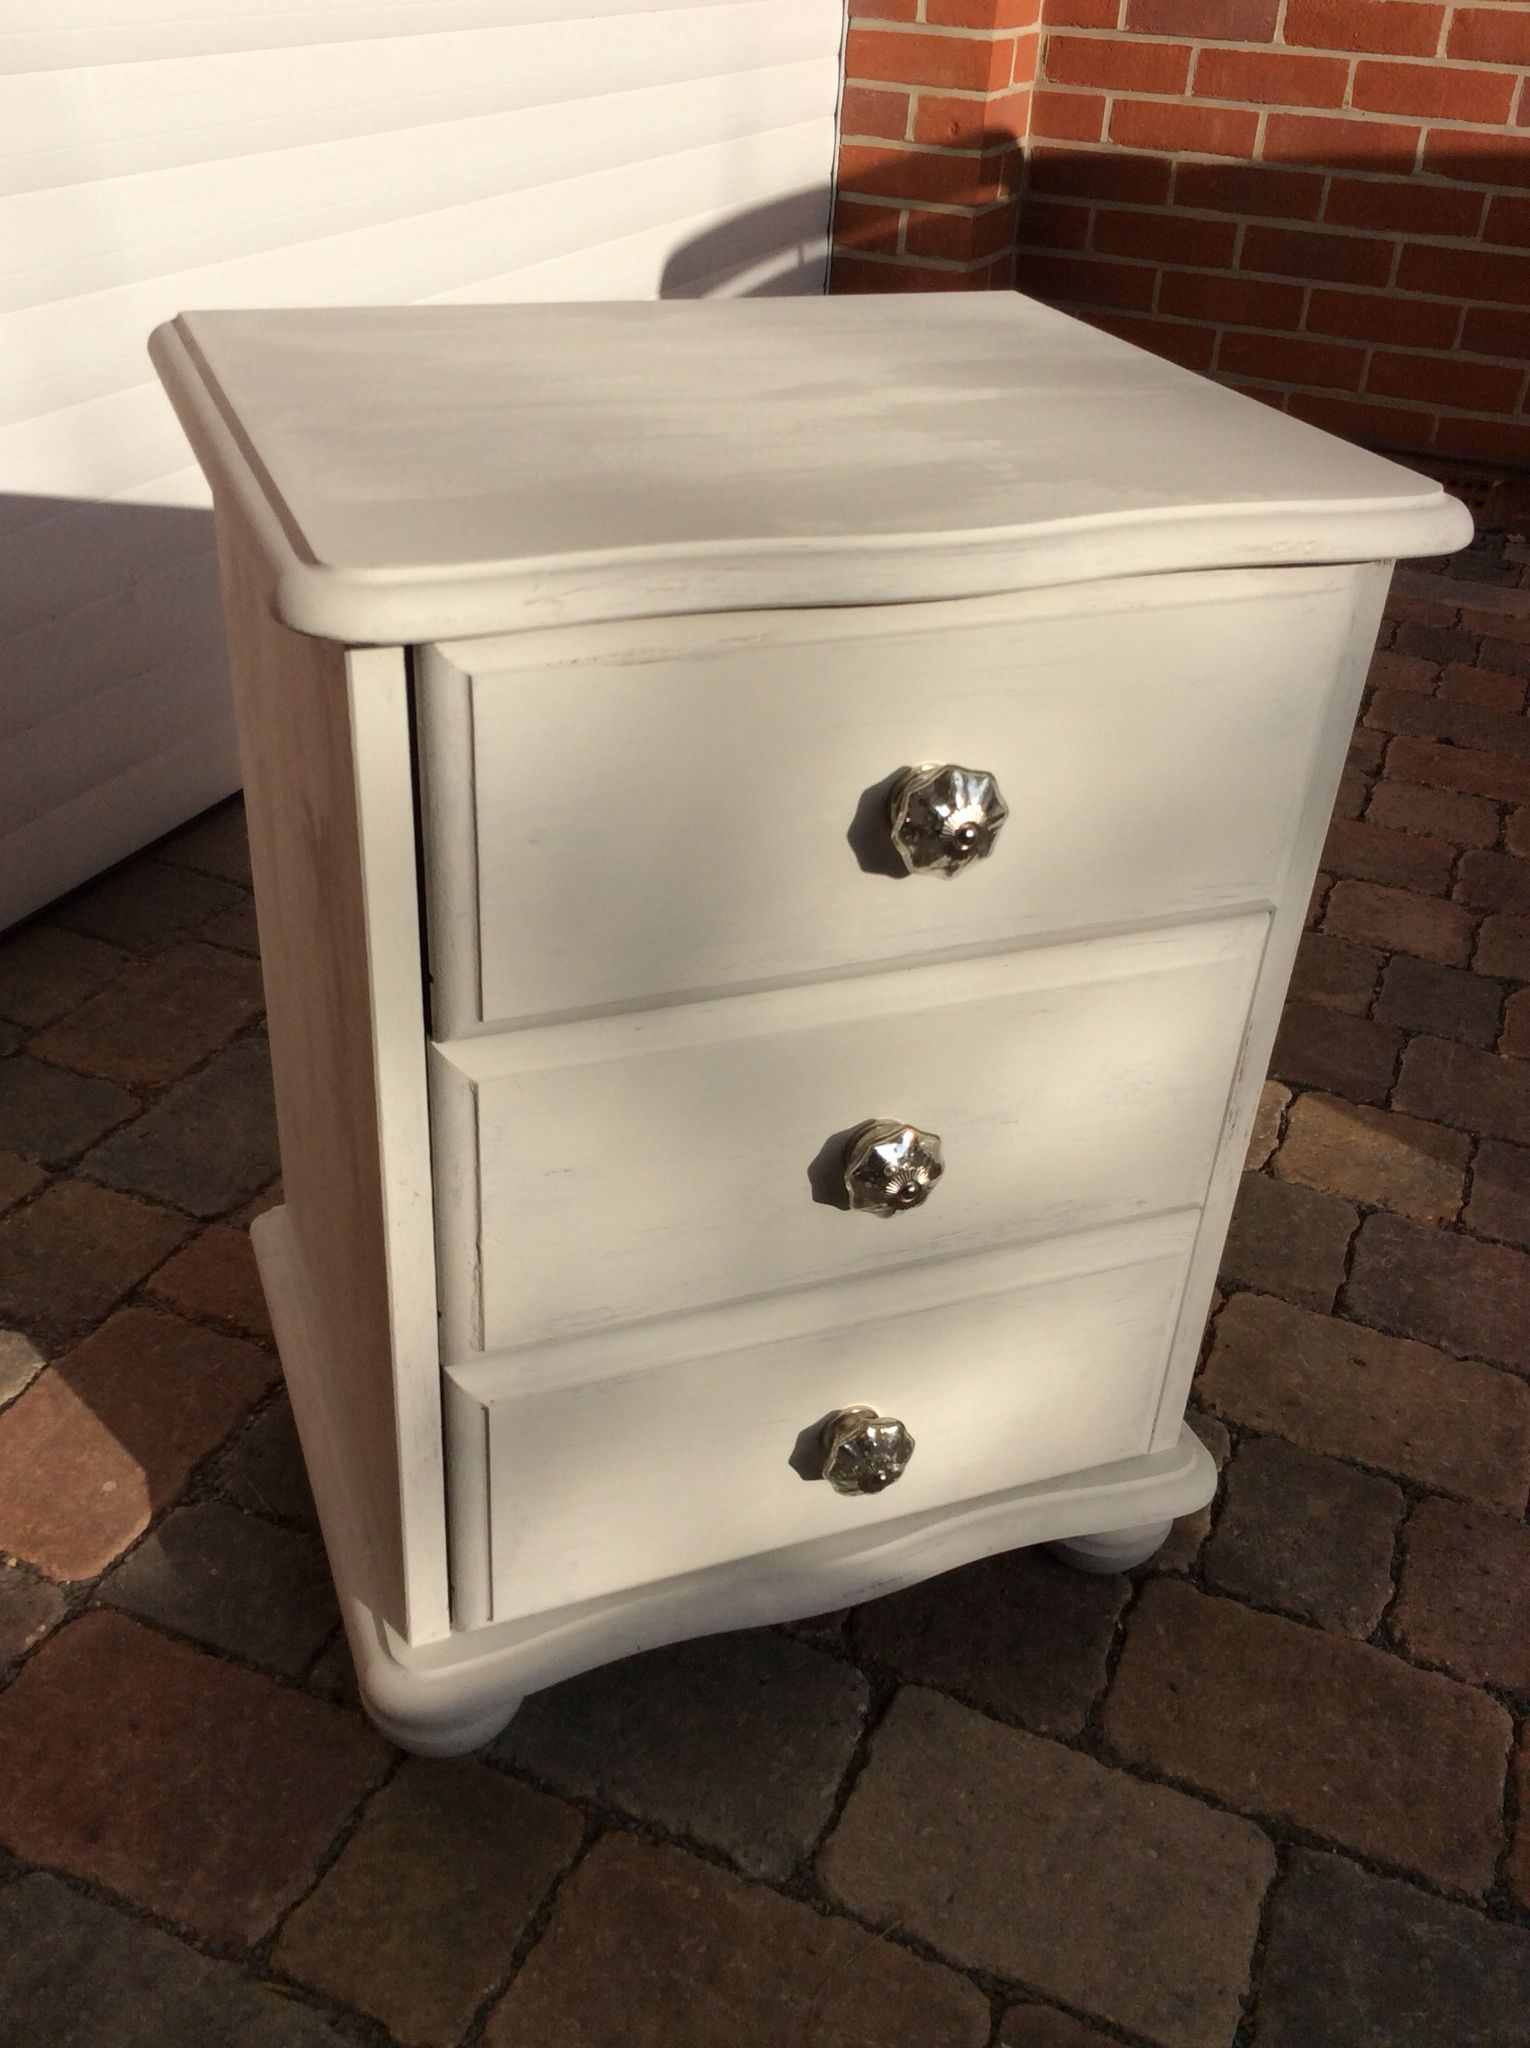 Rustoleum Driftwood Stain Painted Sideboard In Rustoleum Chalk Paint Winter Grey With